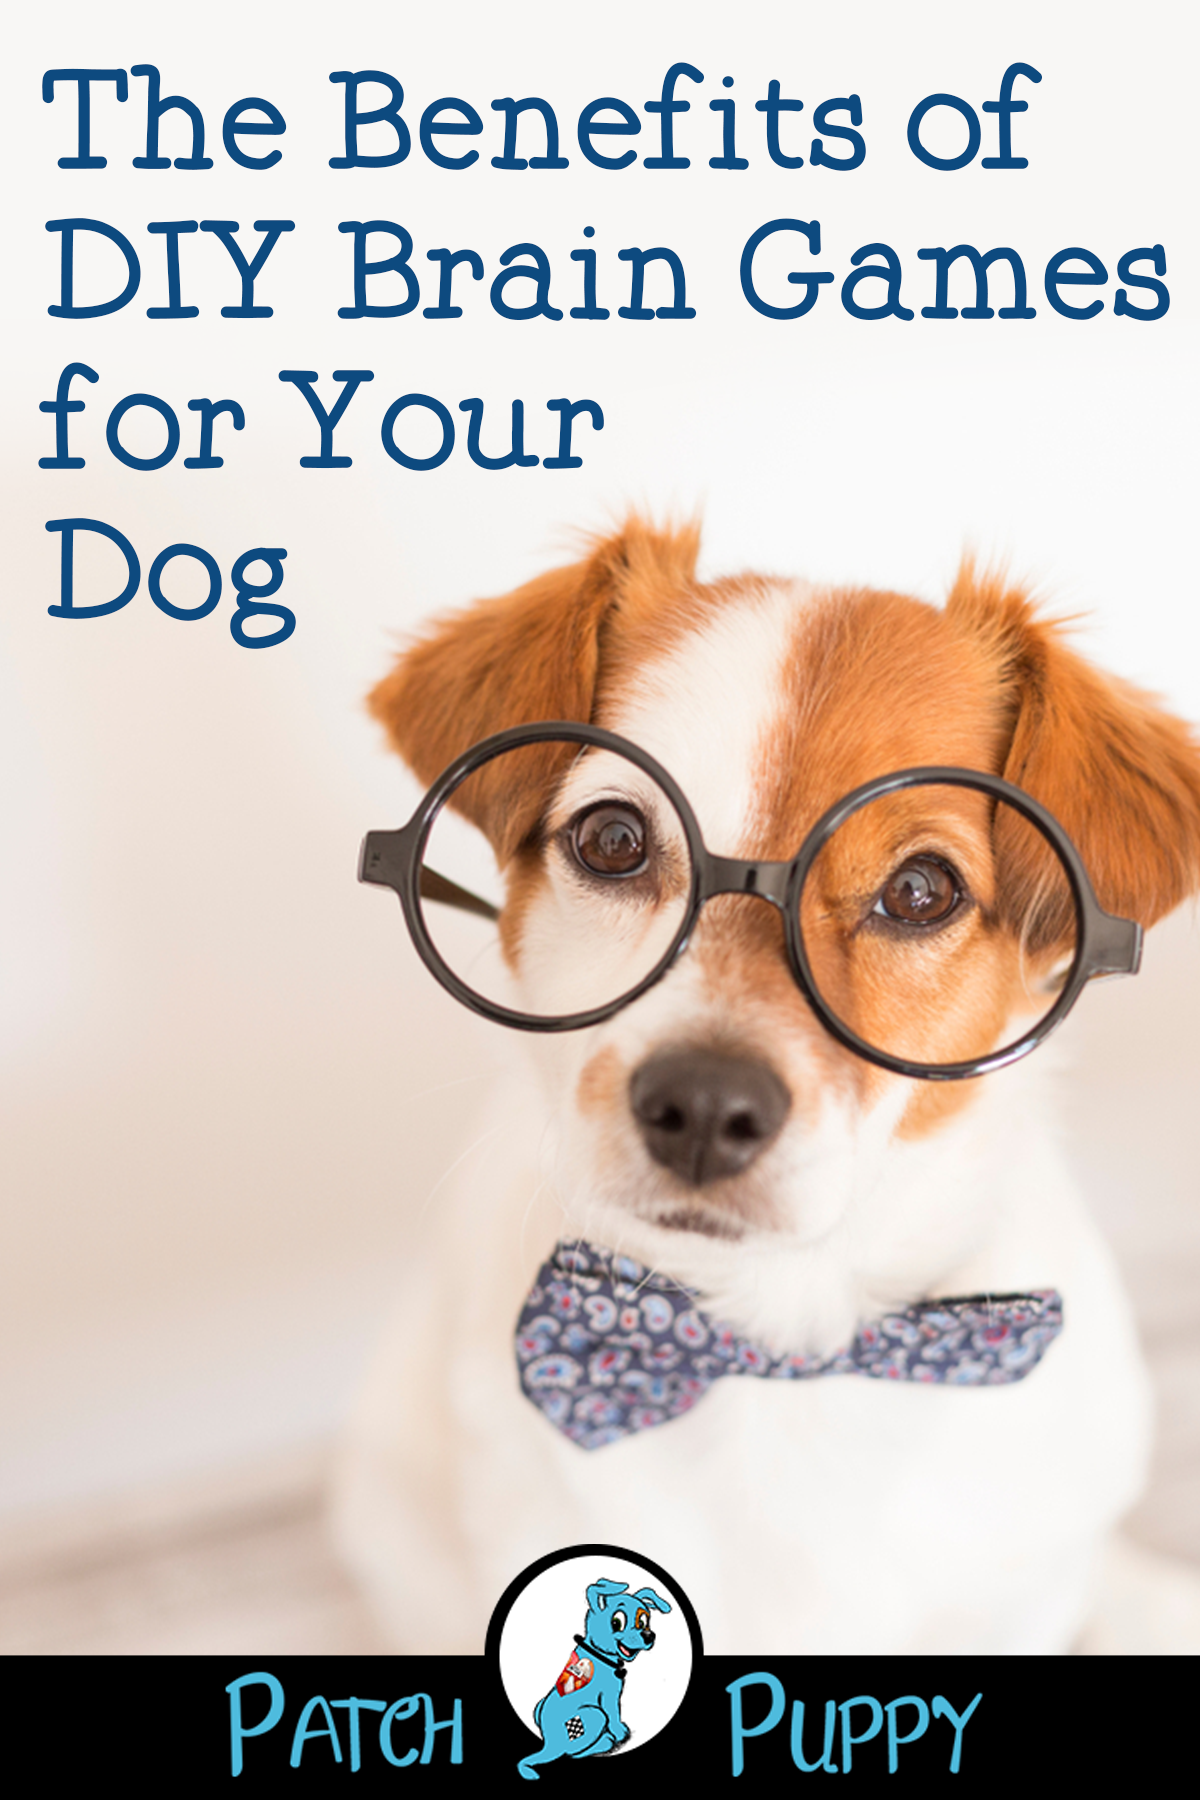 DIY Dog Toys from Water Bottles Make your dog a treat